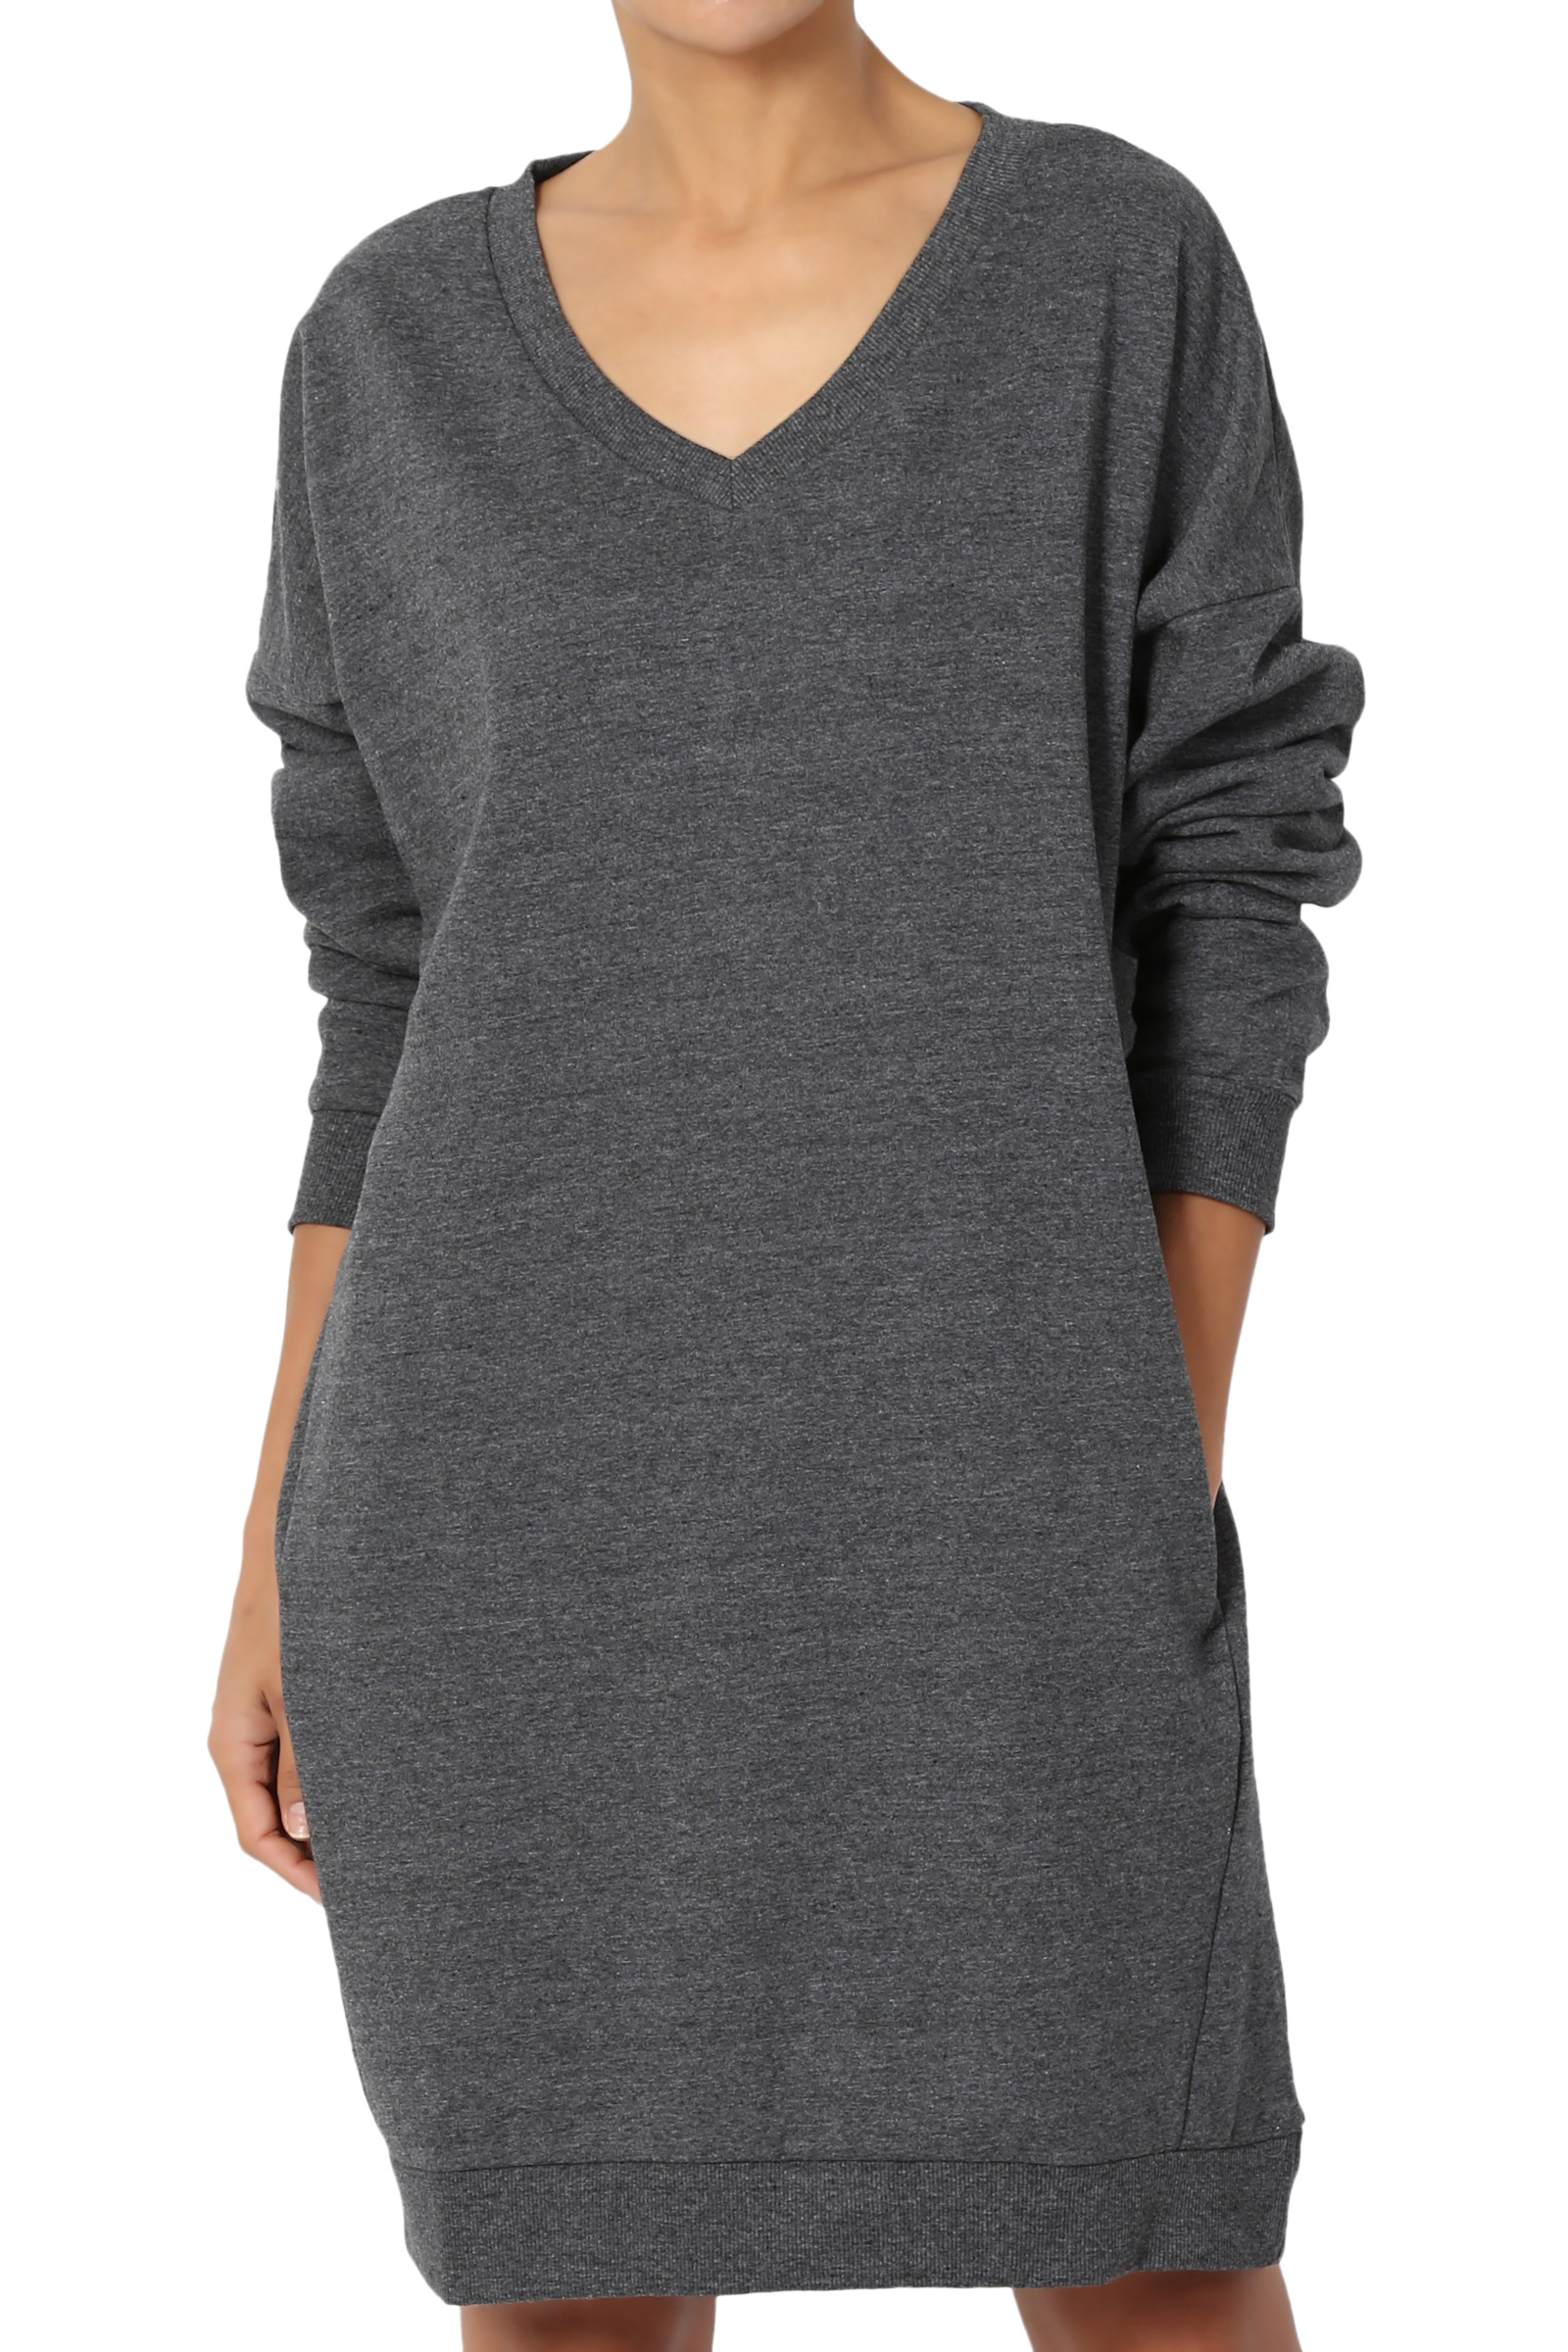 TheMogan Casual Oversized V-Neck Sweatshirts Loose Fit Pullover Tunic S~3XL